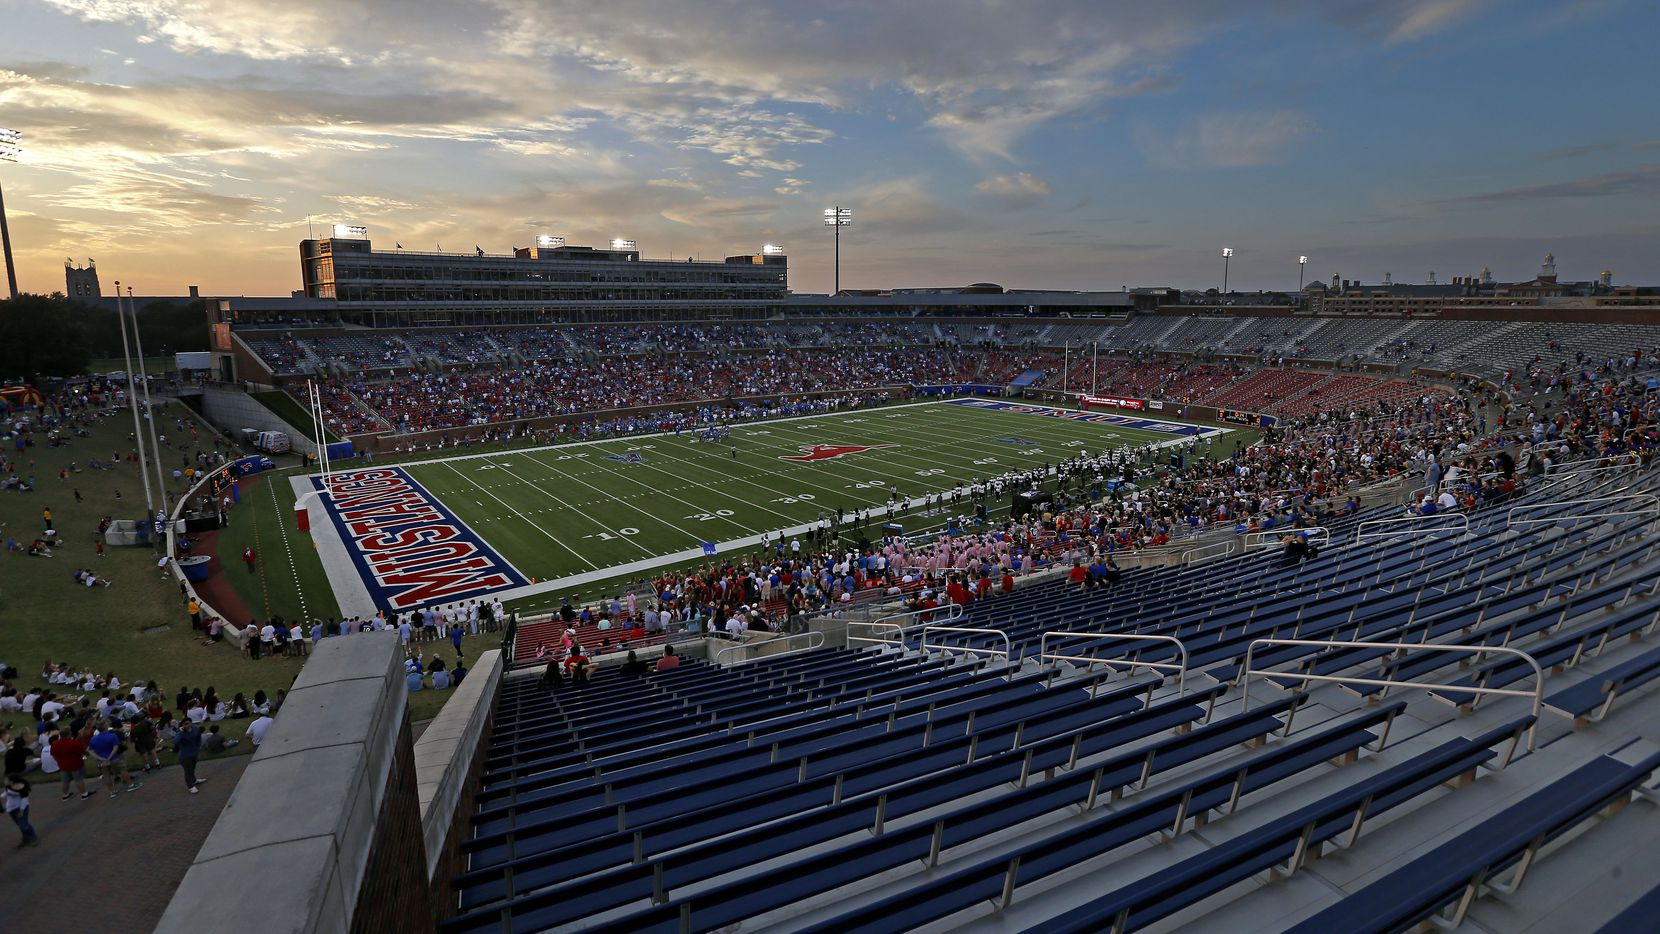 People watch the kick-off of the SMU and UCF game at Gerald J. Ford Stadium on Saturday, Nov. 4, 2017, in Dallas. SMU has had poor attendance in recent games.